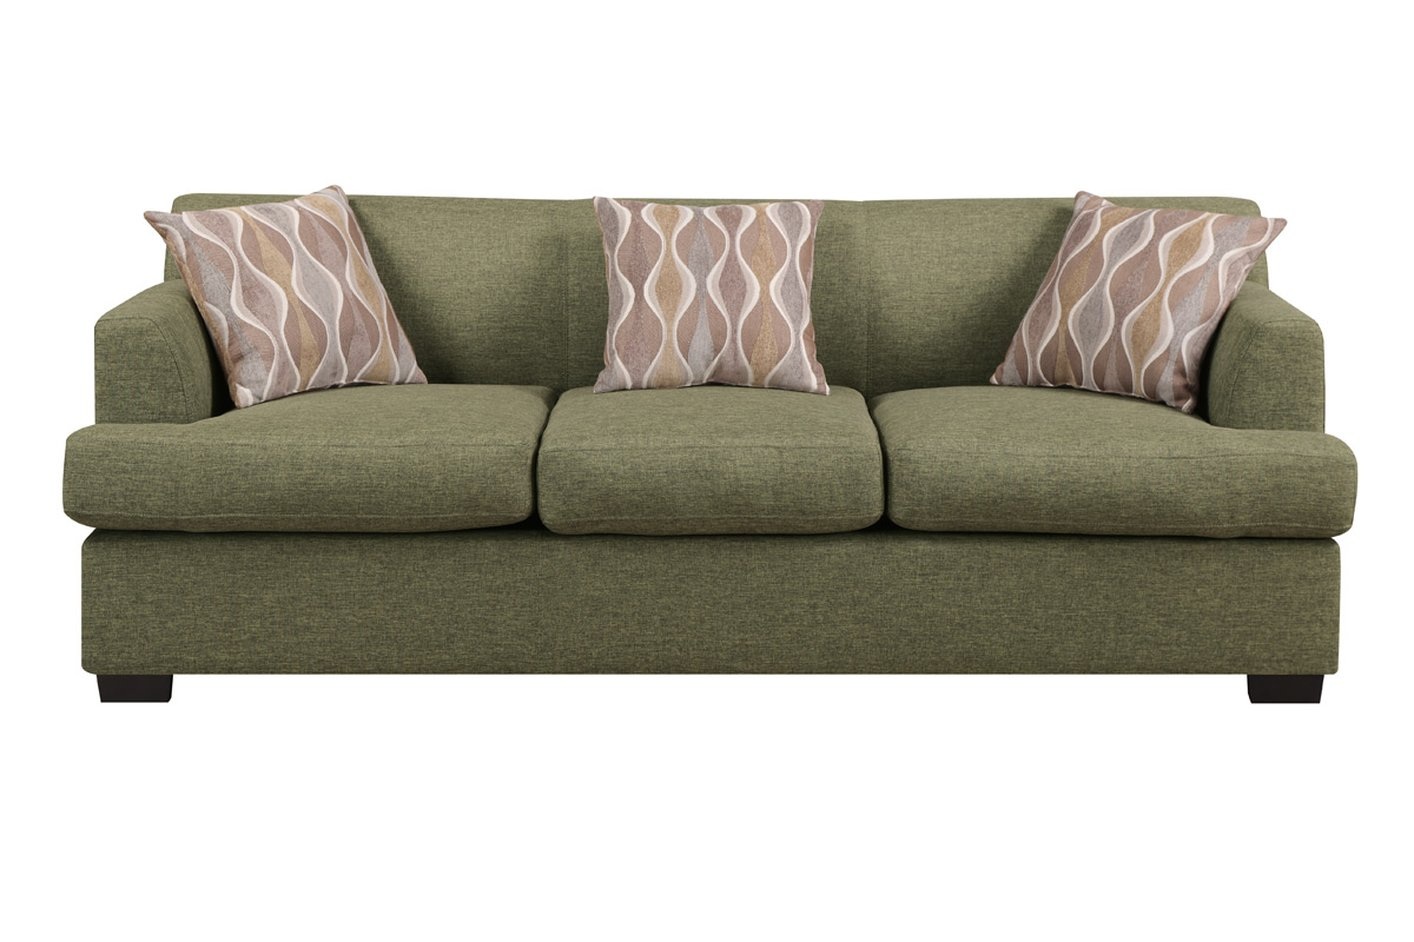 Poundex montreal iv f7978 green fabric sofa steal a sofa Fabric sofas and loveseats